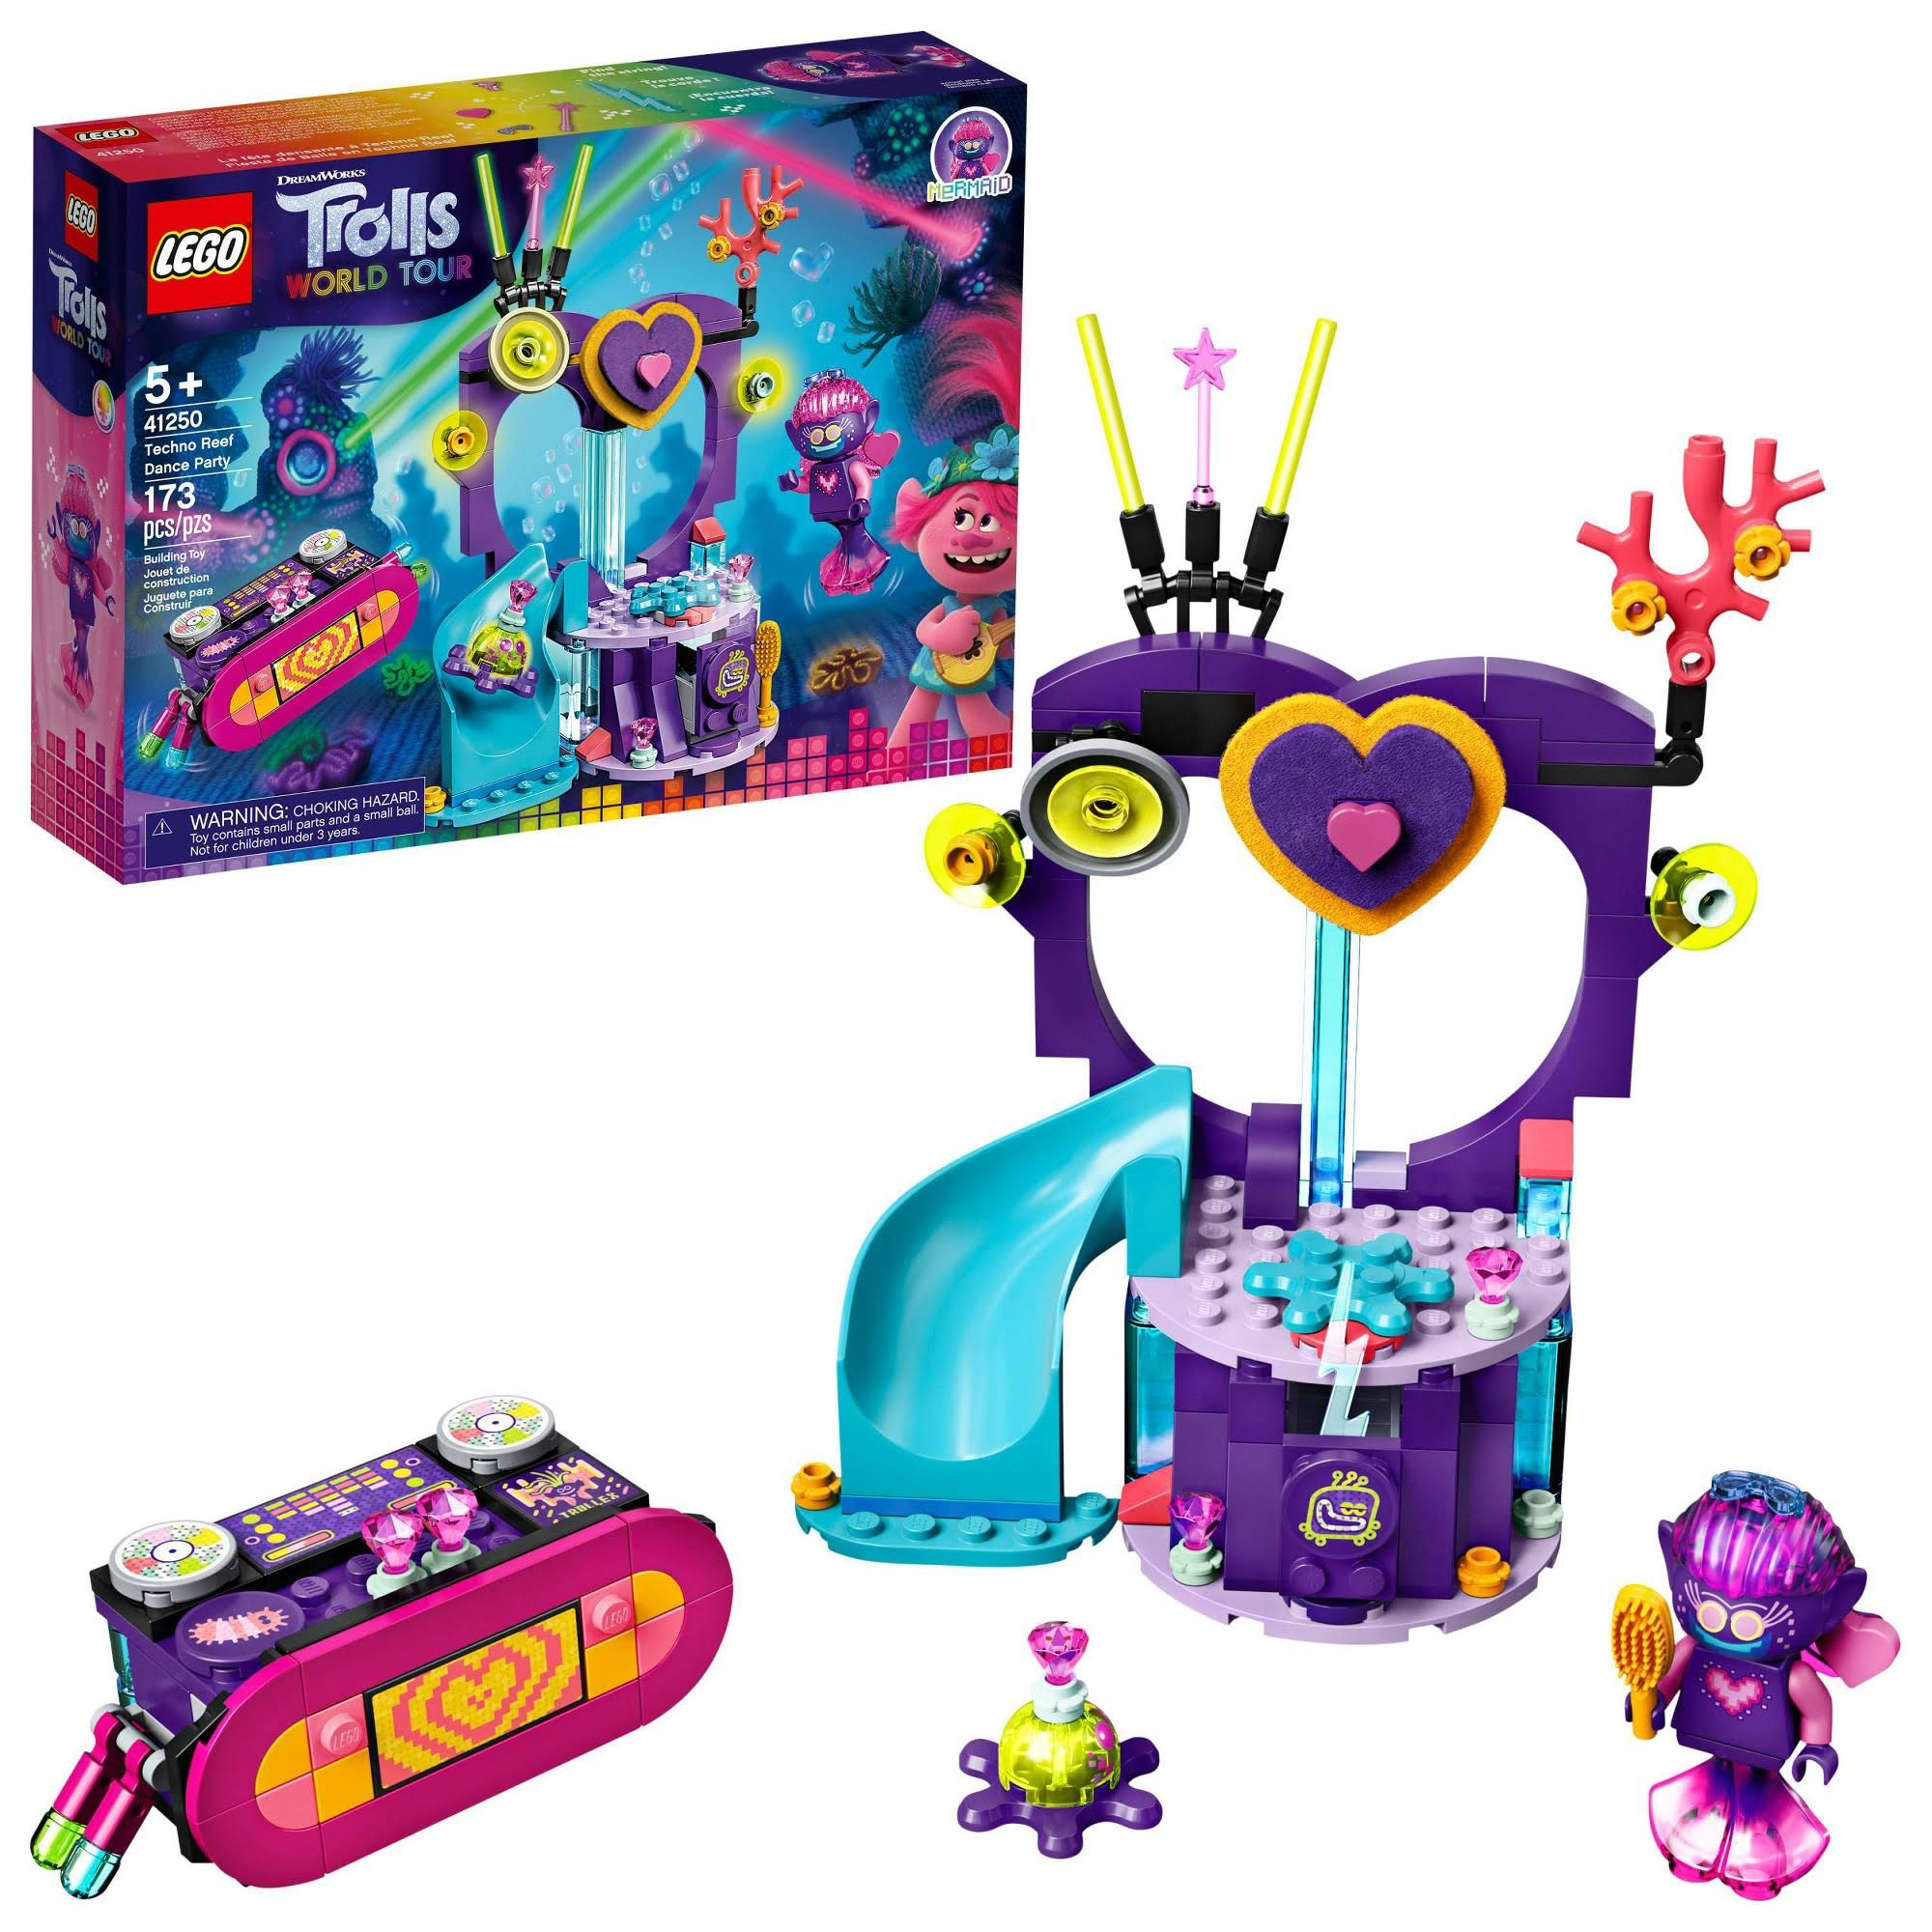 Lego - Trolls World Tour Techno Reef Dance Party 41250